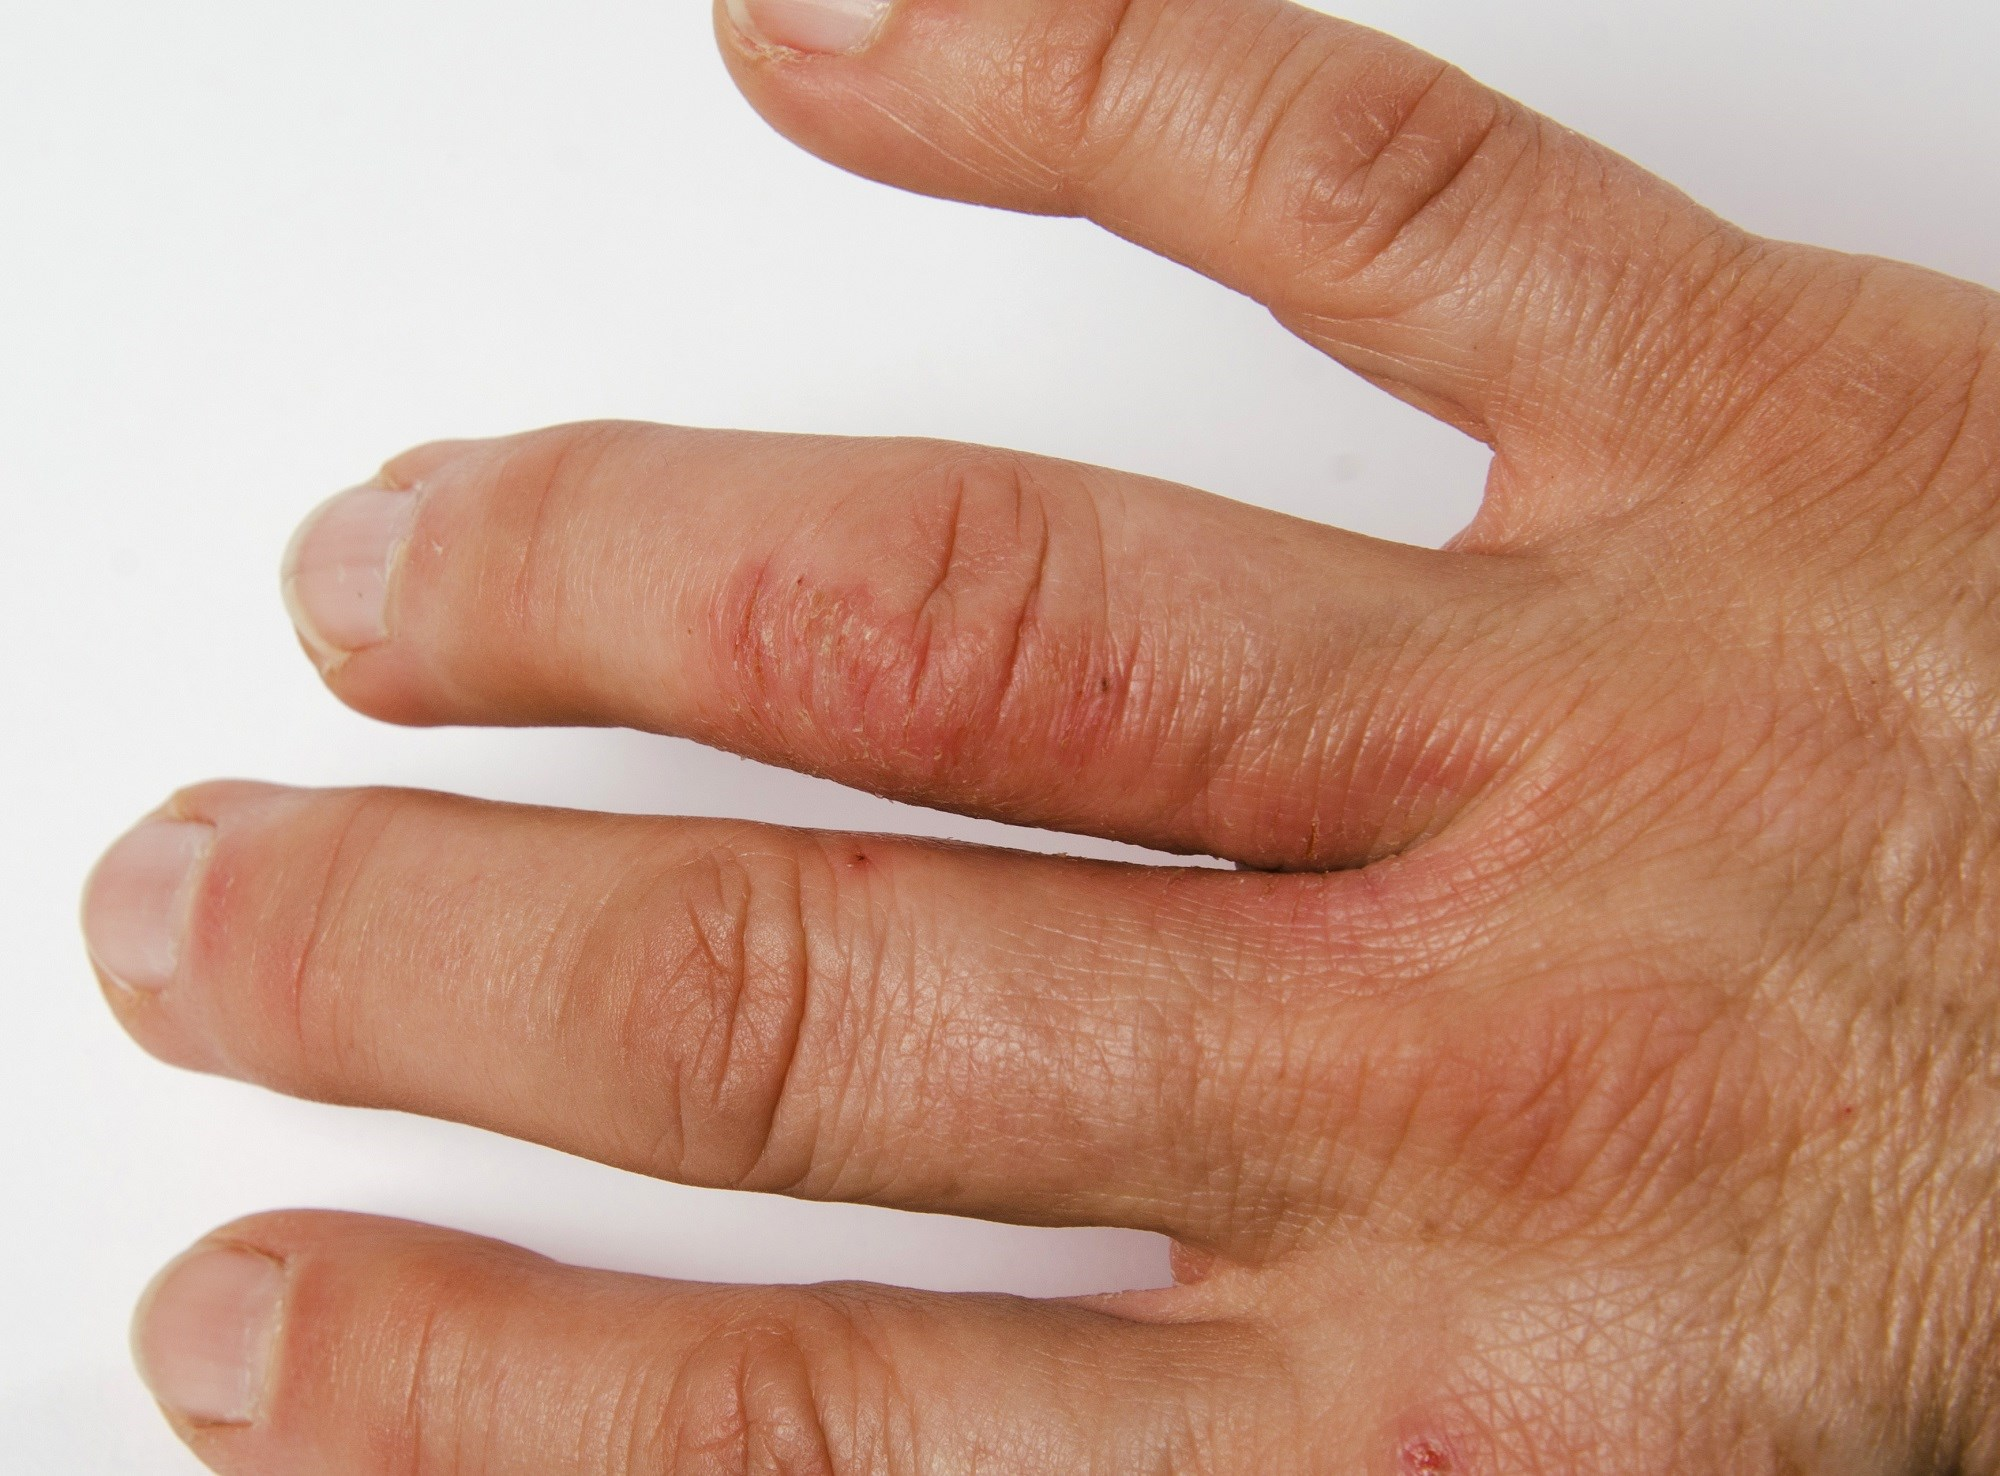 New Psoriatic Arthritis Guidelines Recommend TNFi as First-Line Tx Option